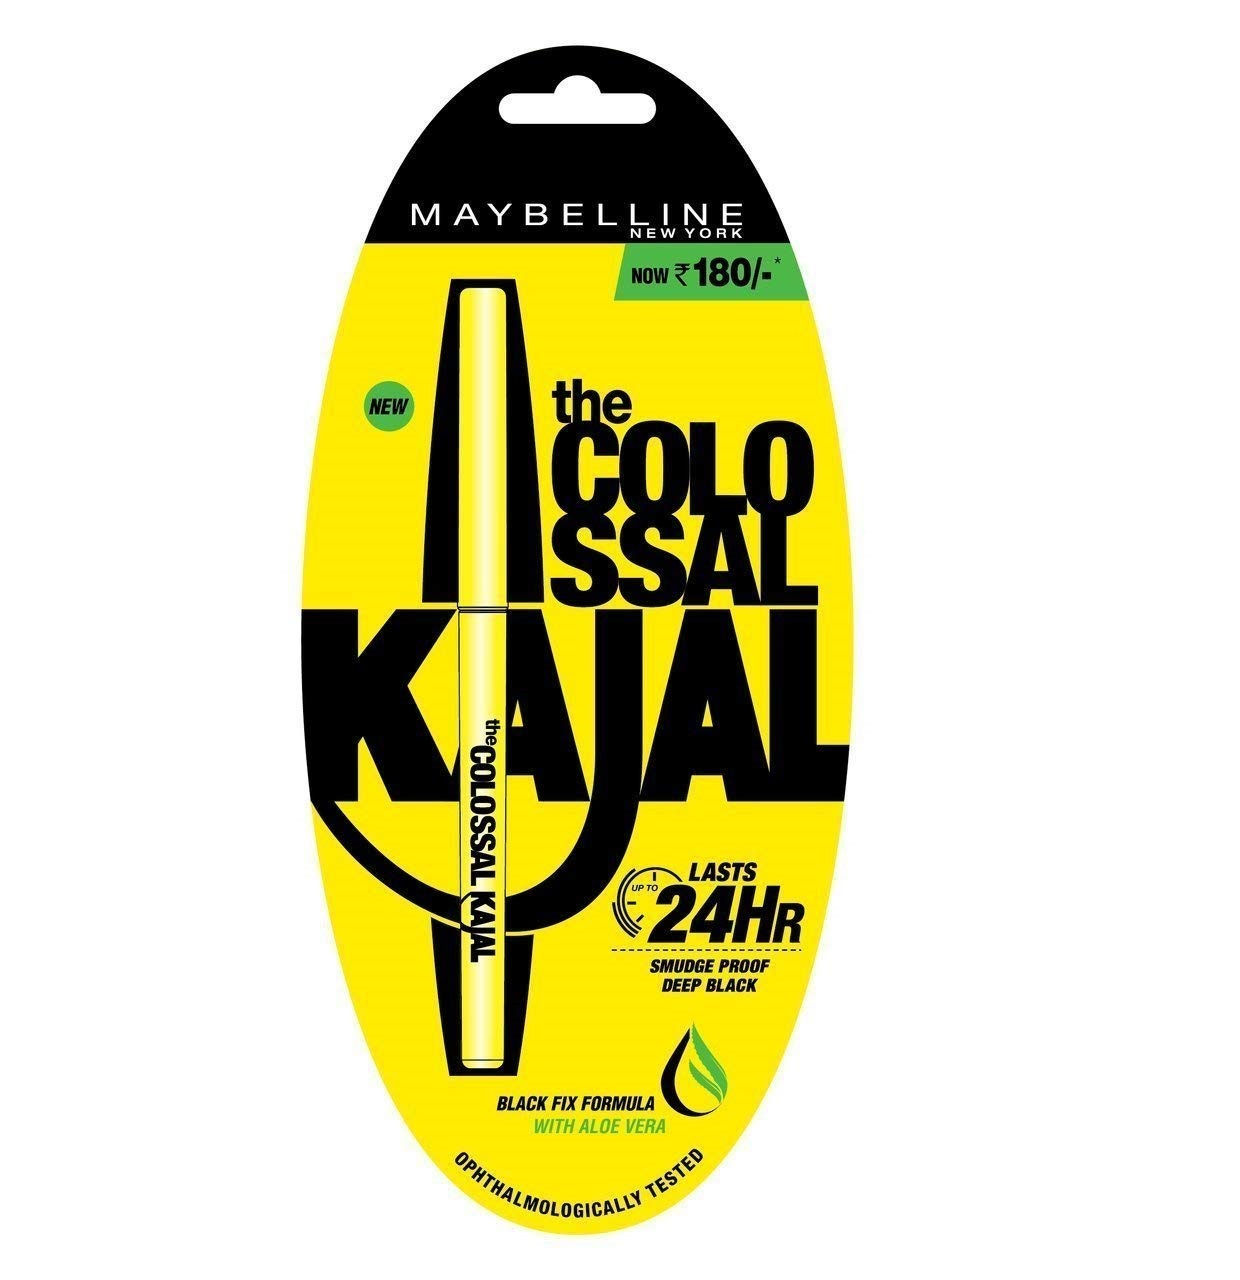 Maybelline New York The Colossal Kajal 24Hour Smudge Proof